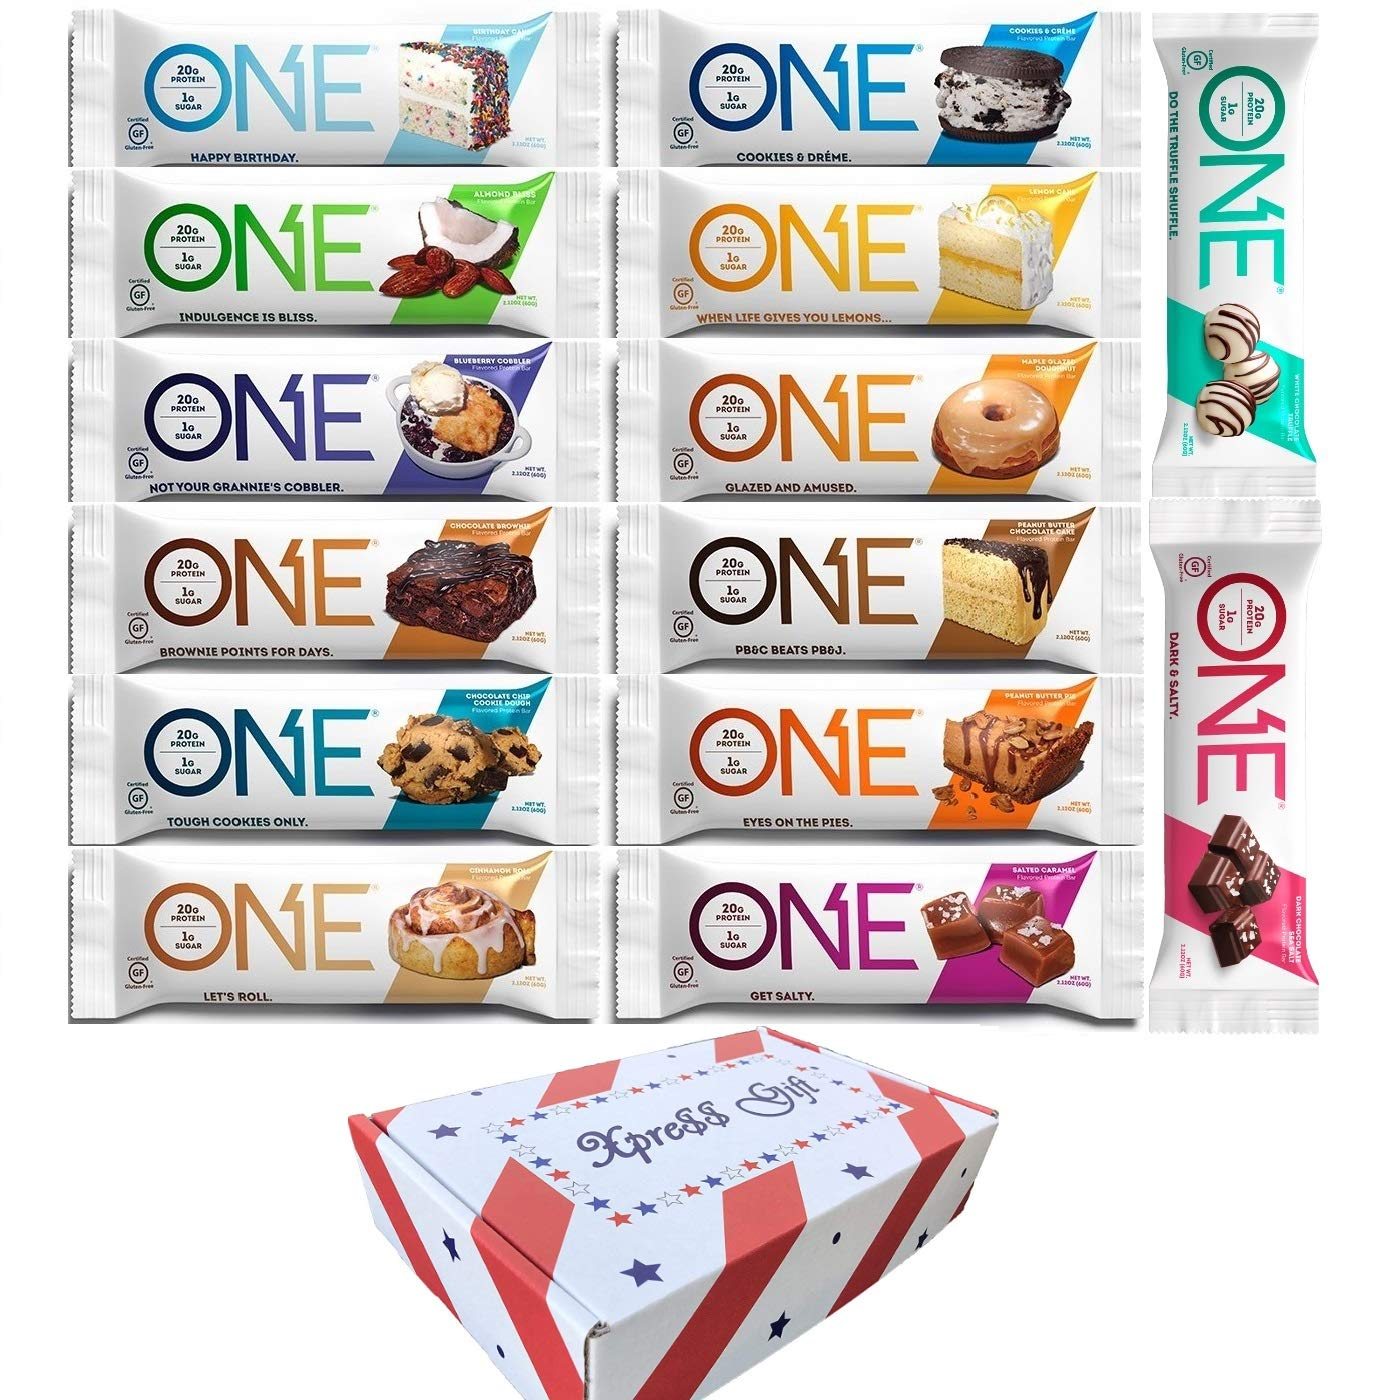 OhYeah One Protein Bars Variety - All Variety (Pack of 14), New Flavors included, Best Tasting Gluten Free Bars 2.12 Oz each, Comes in XPRESSGIFT Box